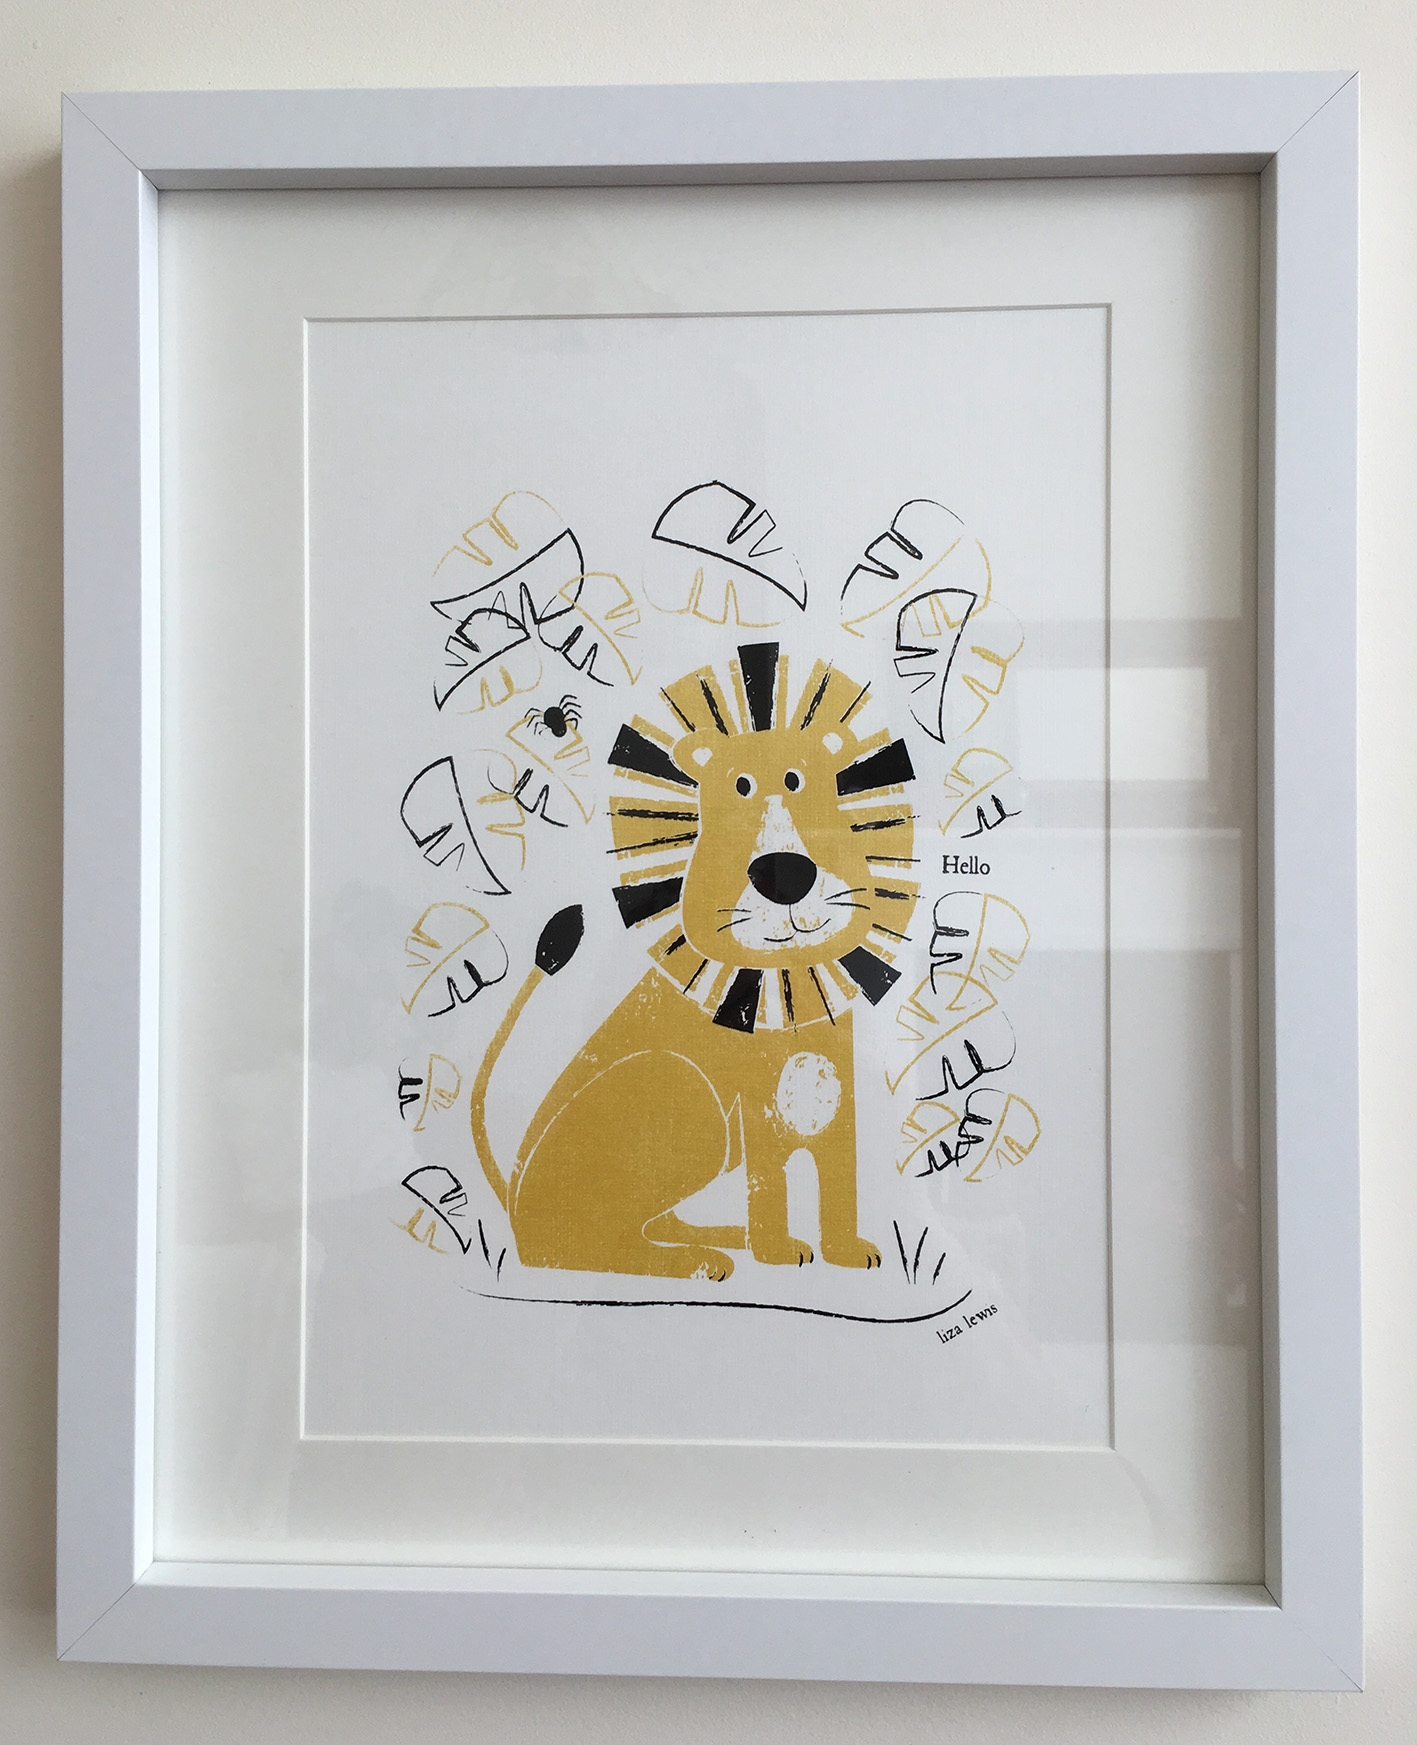 Framed Limited Edition Gold Lion Screen Print